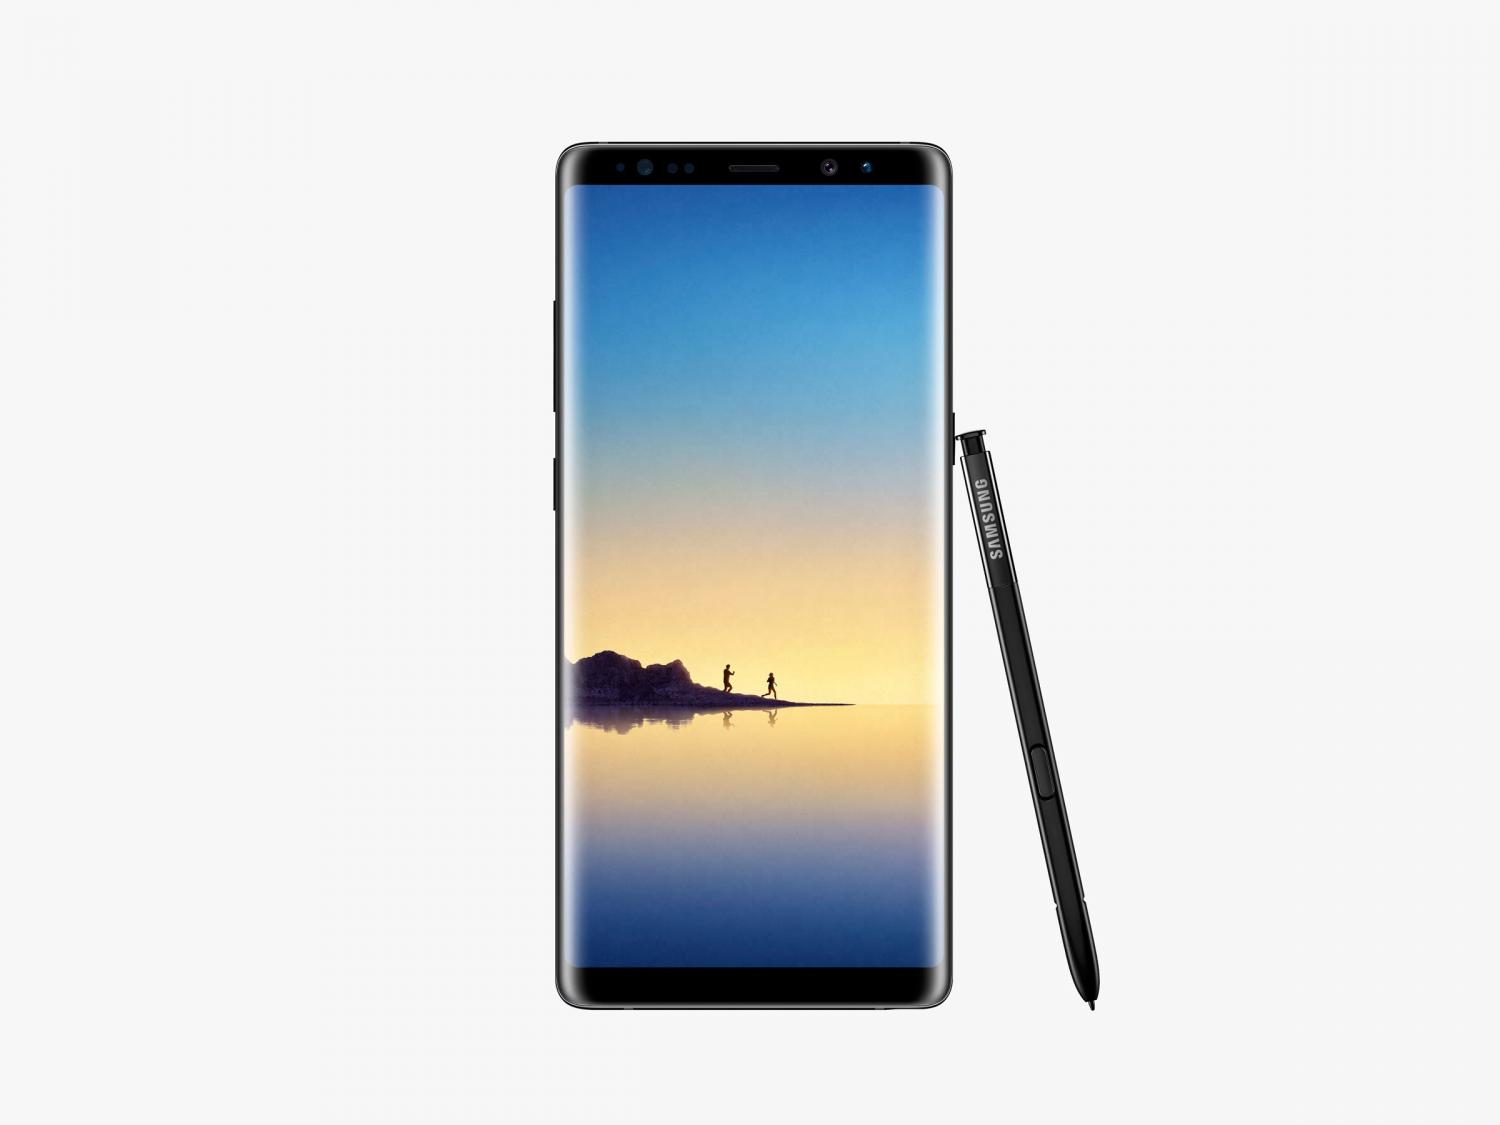 Samsung president says Galaxy Note 8 price will not exceed $886